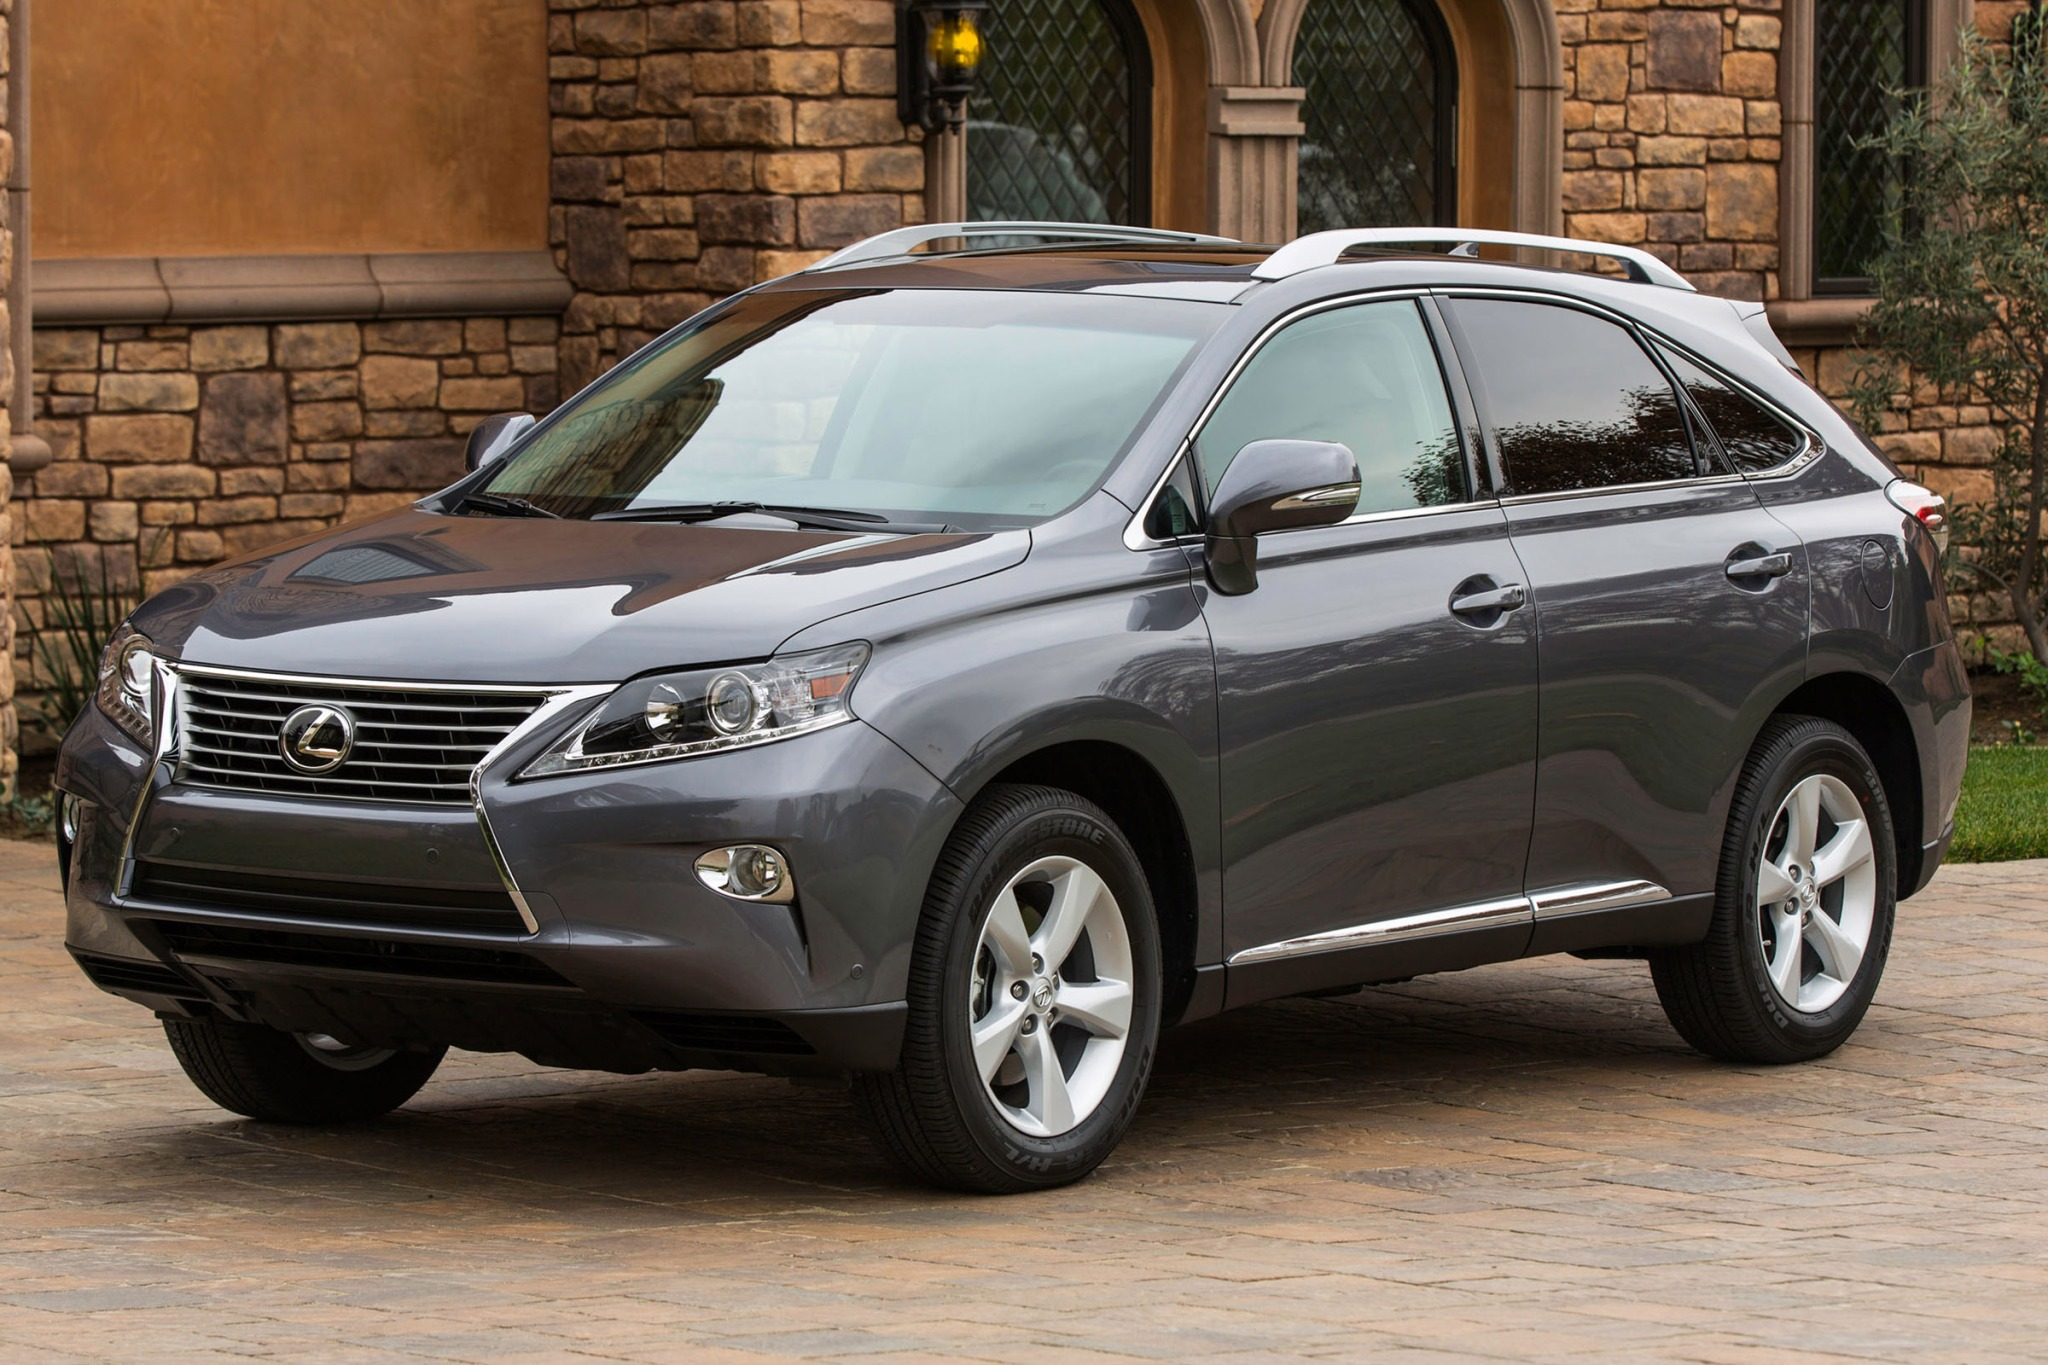 2015 lexus rx 350 - information and photos - zombiedrive